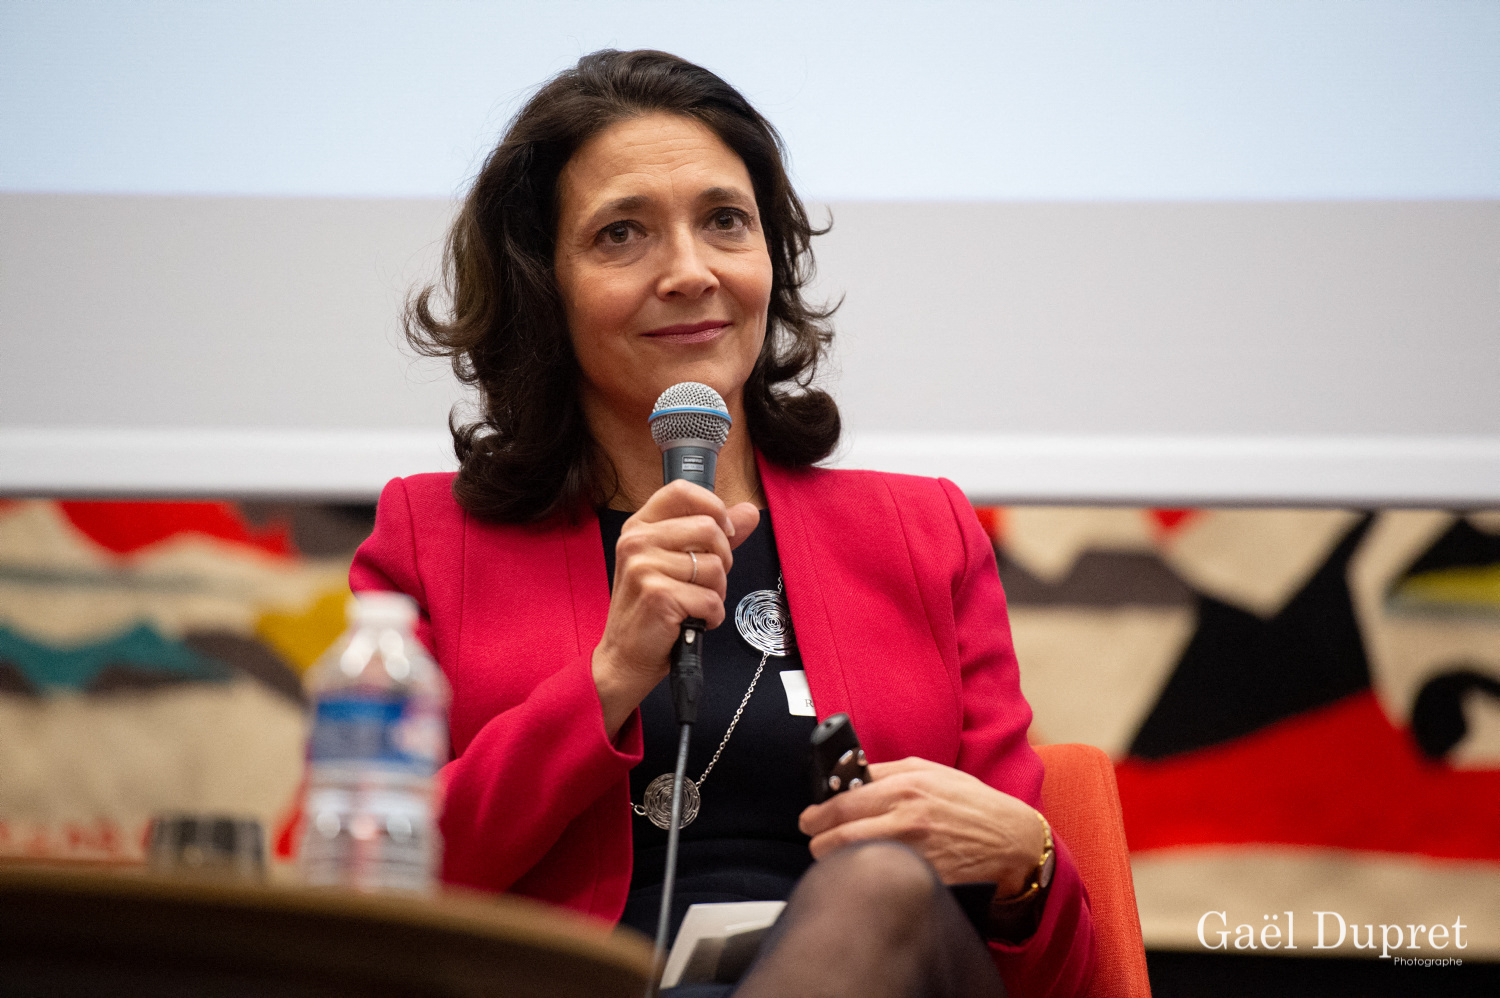 ©Gaël Dupret, France, Paris le 2018-11-15 : 2ème édition des WINDAY Paris par FBA - Femmes Business Angels. Photo : Présentation de l'étude WA4E :  Florence RICHARDSON, Co-Présidente de Femmes Business Angels.   Presentation of the WA4E study: Florence RICHARDSON, Co-President of Women Business Angels.